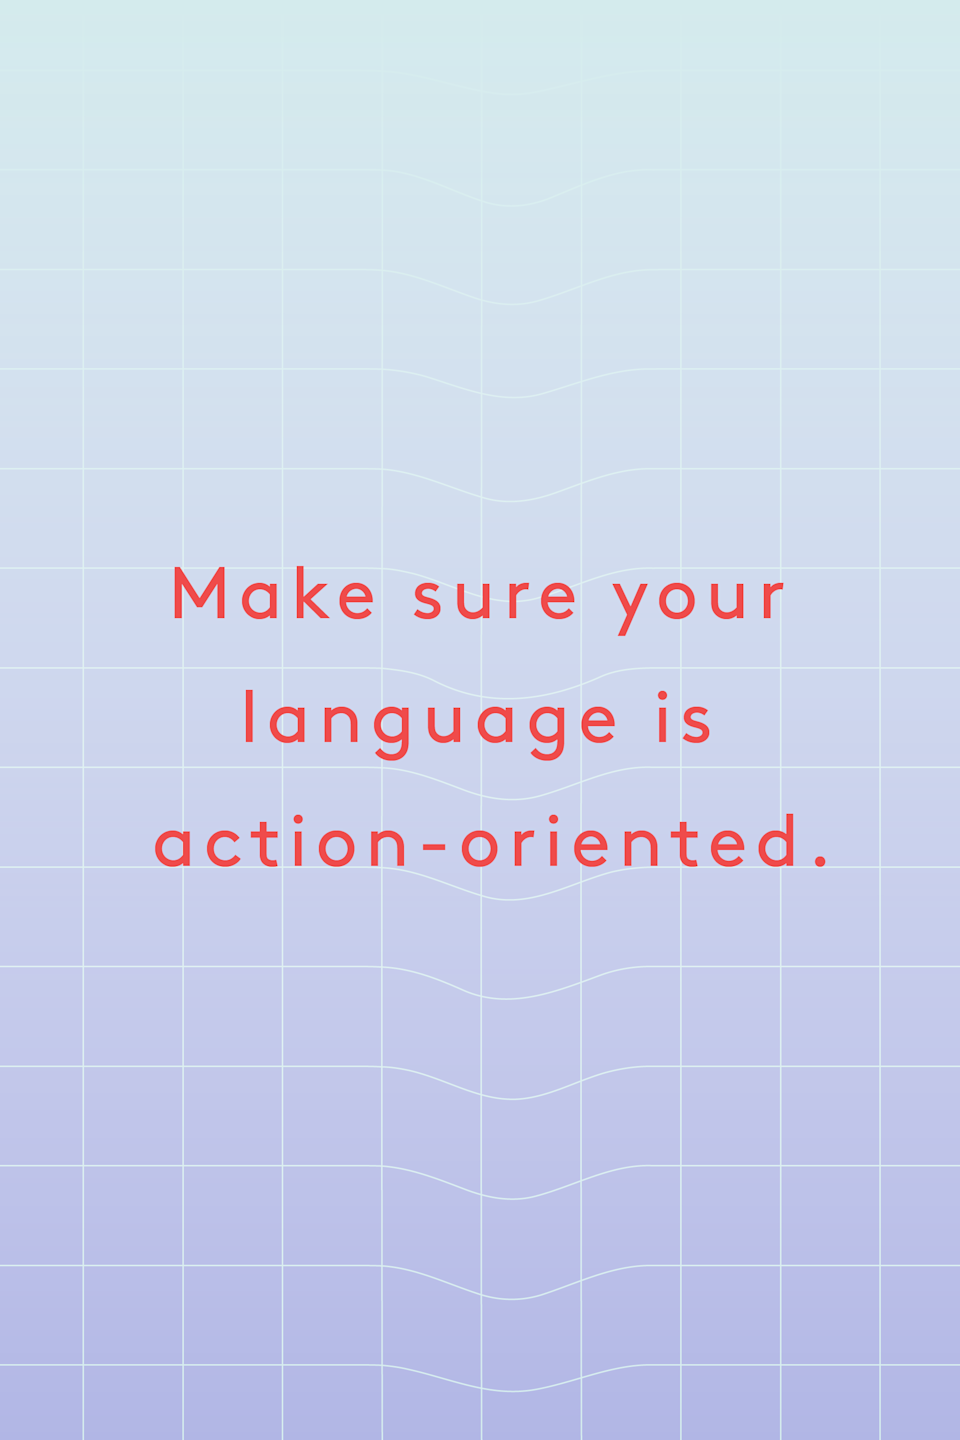 """<p><strong>Make sure your language is action-oriented.</strong></p><p>""""Shove that, shake those, grab and hold and twist, push it in, push it in — way in. That purr in your voice will be even breathier and insistent when you ask if [they] want you to spread wider, or clamp down like a vise.""""</p><p>-<a href=""""https://kathleenkbooks.com/"""" rel=""""nofollow noopener"""" target=""""_blank"""" data-ylk=""""slk:Kathleen K."""" class=""""link rapid-noclick-resp"""">Kathleen K.</a></p><span class=""""copyright"""">Illustrated by: Aimee Sy.</span>"""